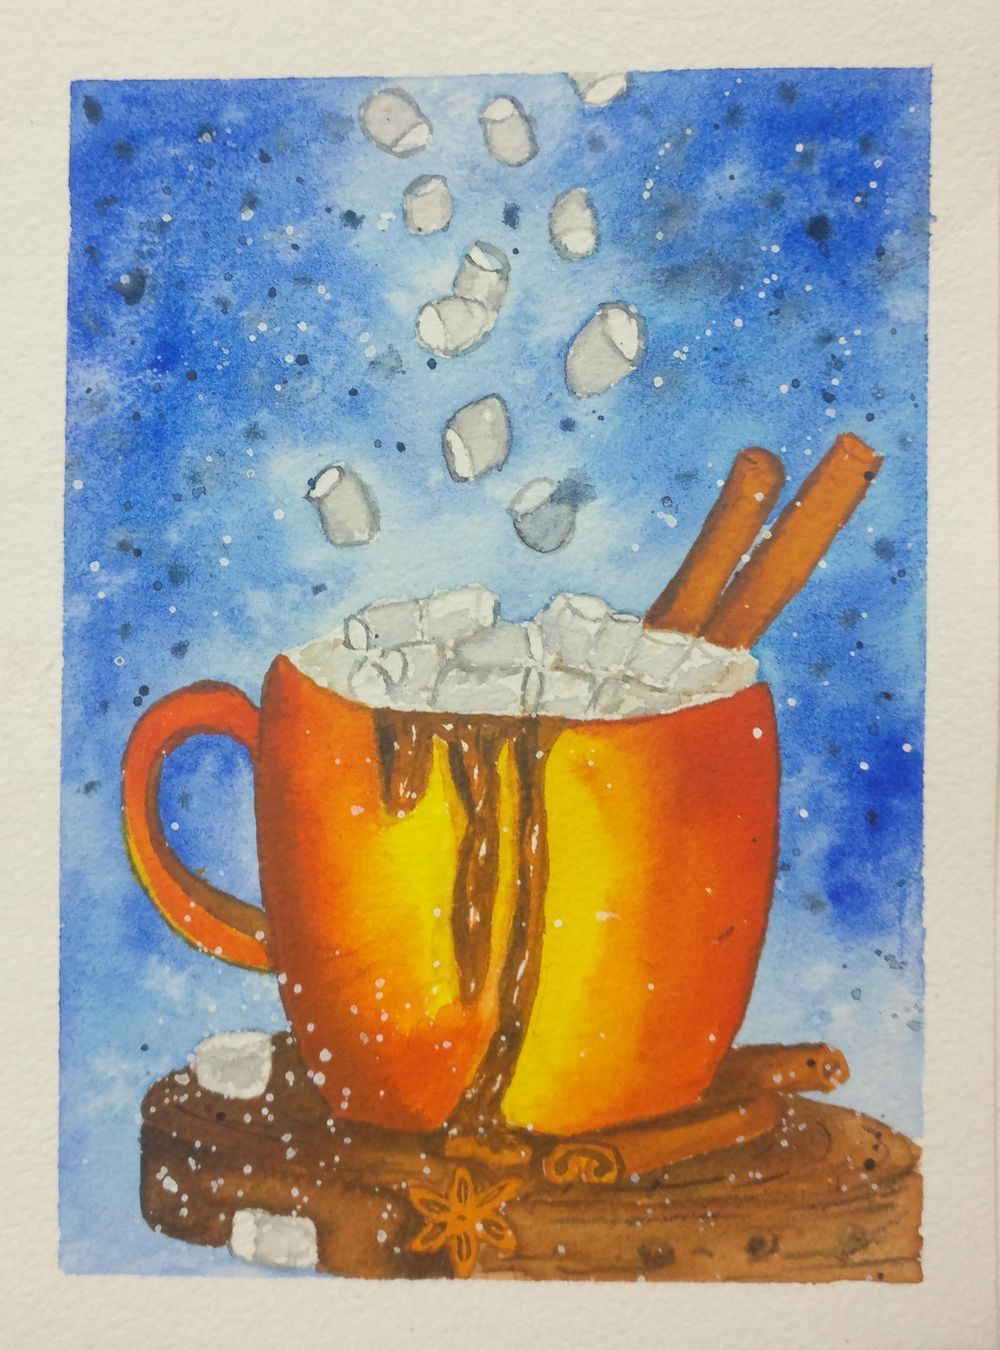 Christmas with watercolors - image 20 - student project